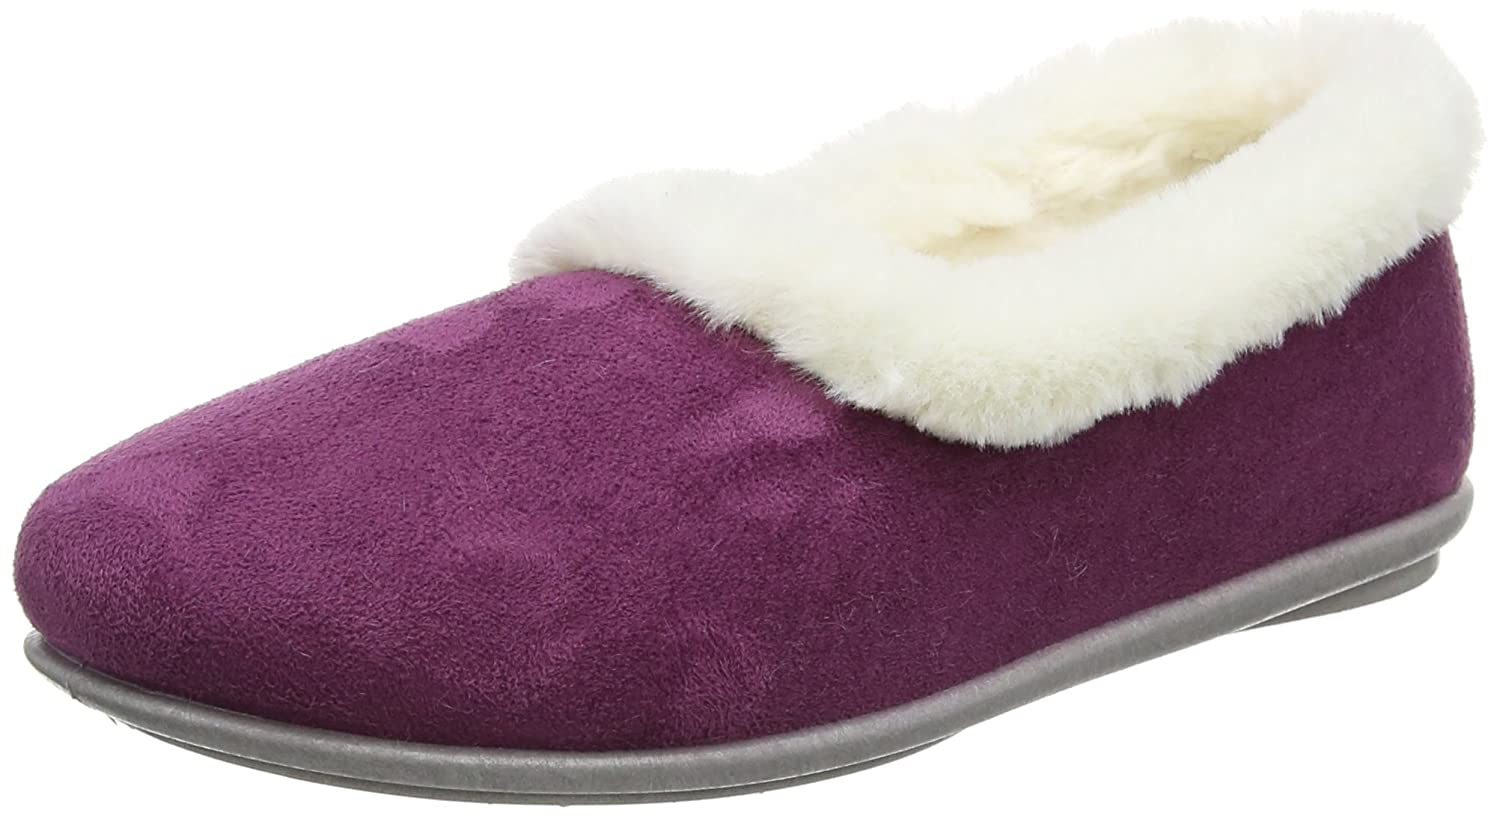 Lotus Prue, Chaussons Lotus Femme Prue, Red Chaussons (Cranberry) 43f32b5 - shopssong.space